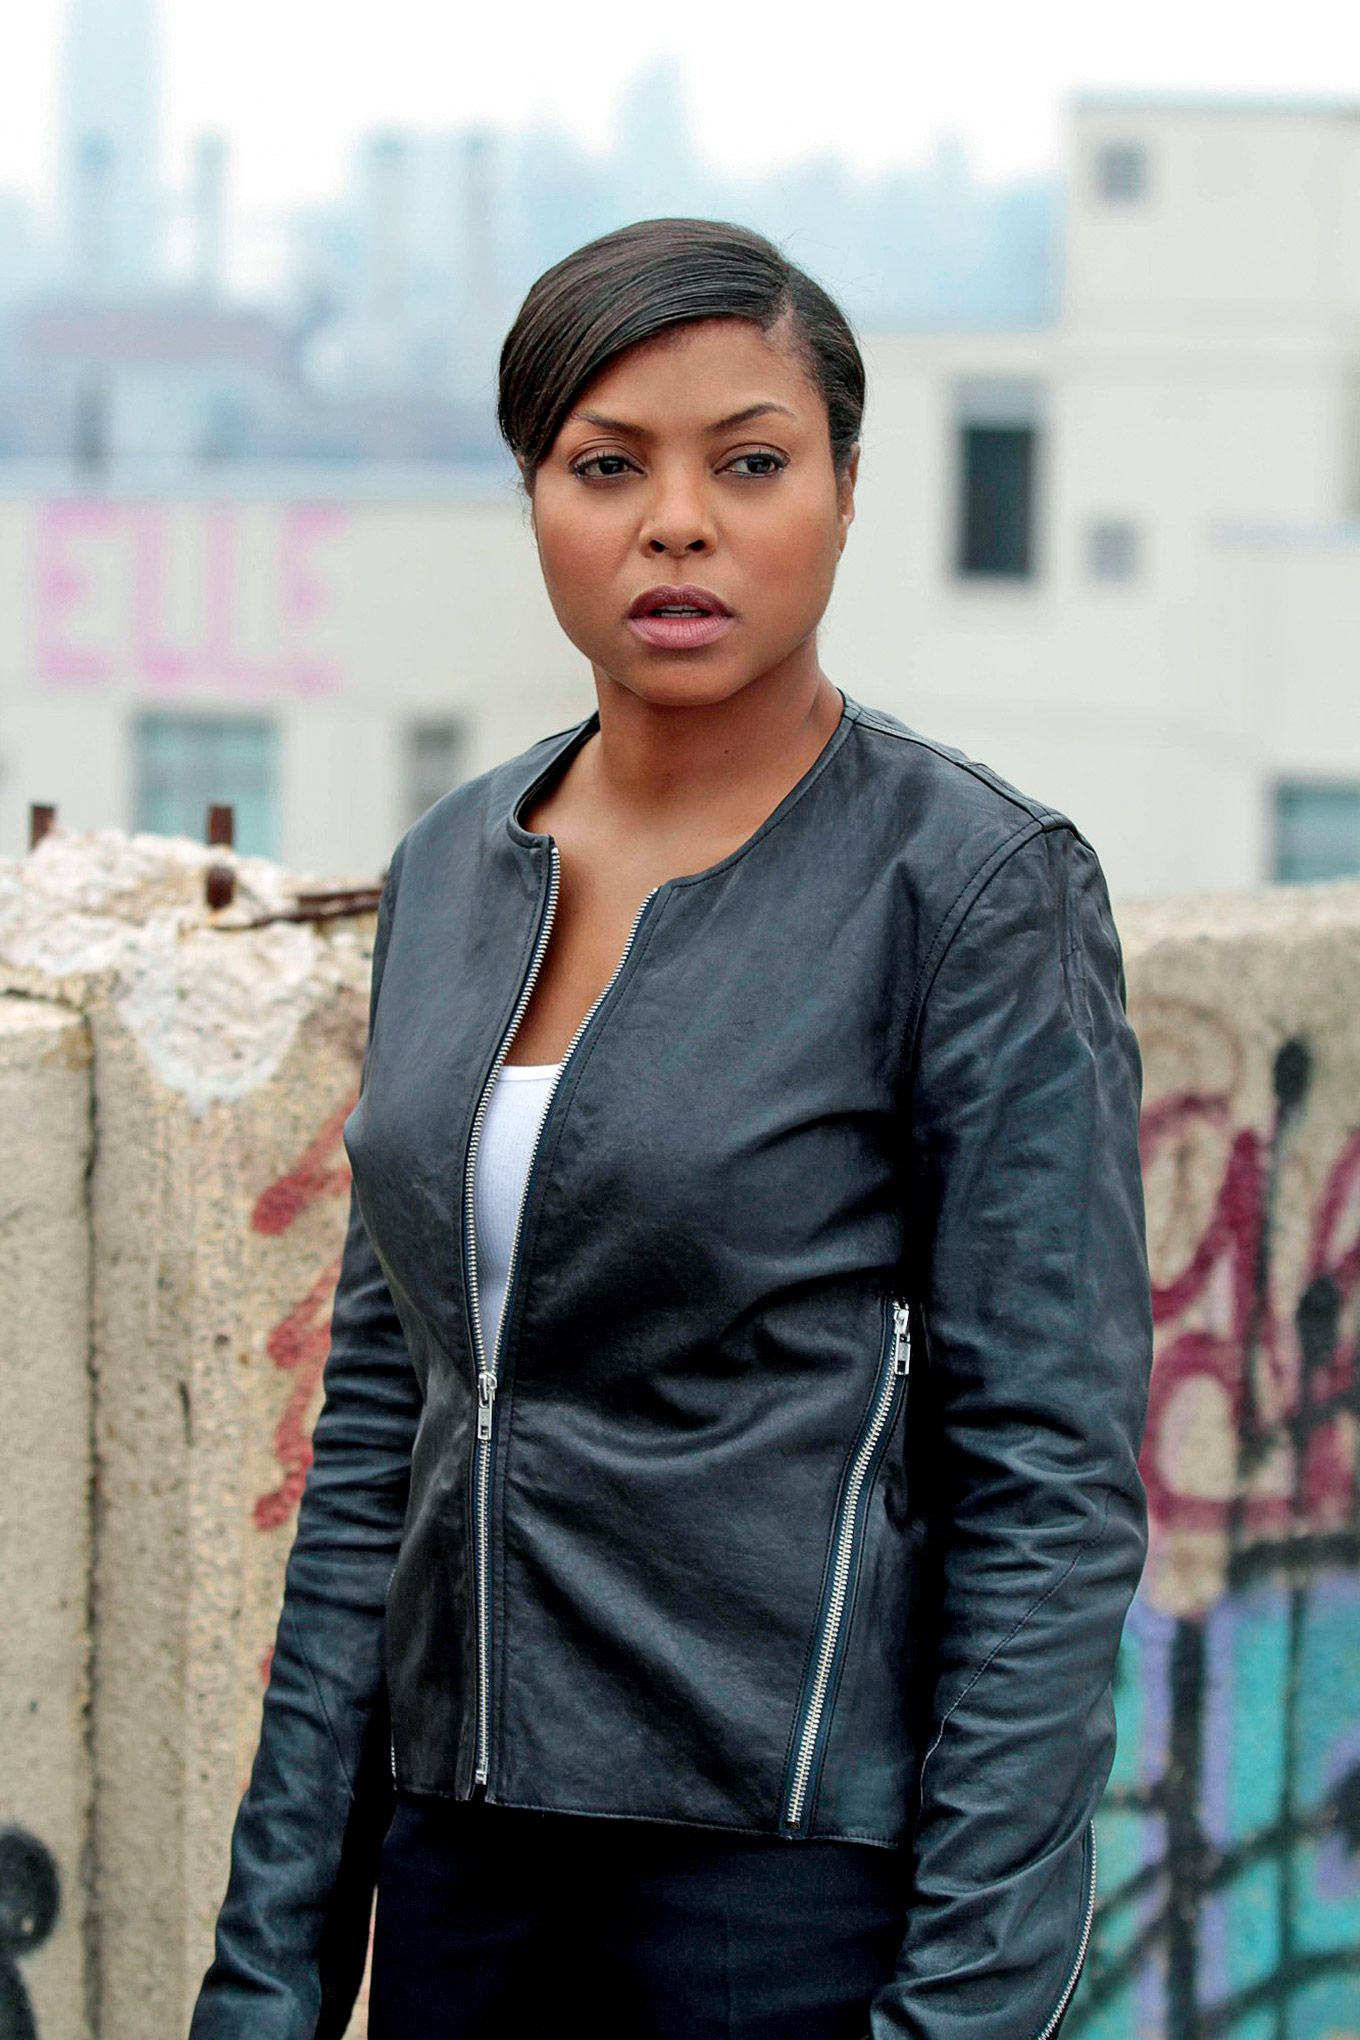 Empire's Taraji P. Henson will go back to her roots as Detective Joss Carter when she joins Person of Interest as a guest star on the April 14 episode, EW has confirmed.  Henson started on the CBS drama in 2011. In the show's third season, Carter was killed during an investigation into a corrupt cop organization HR.  #EMPIRE #NetworkGPS #SocialMedia